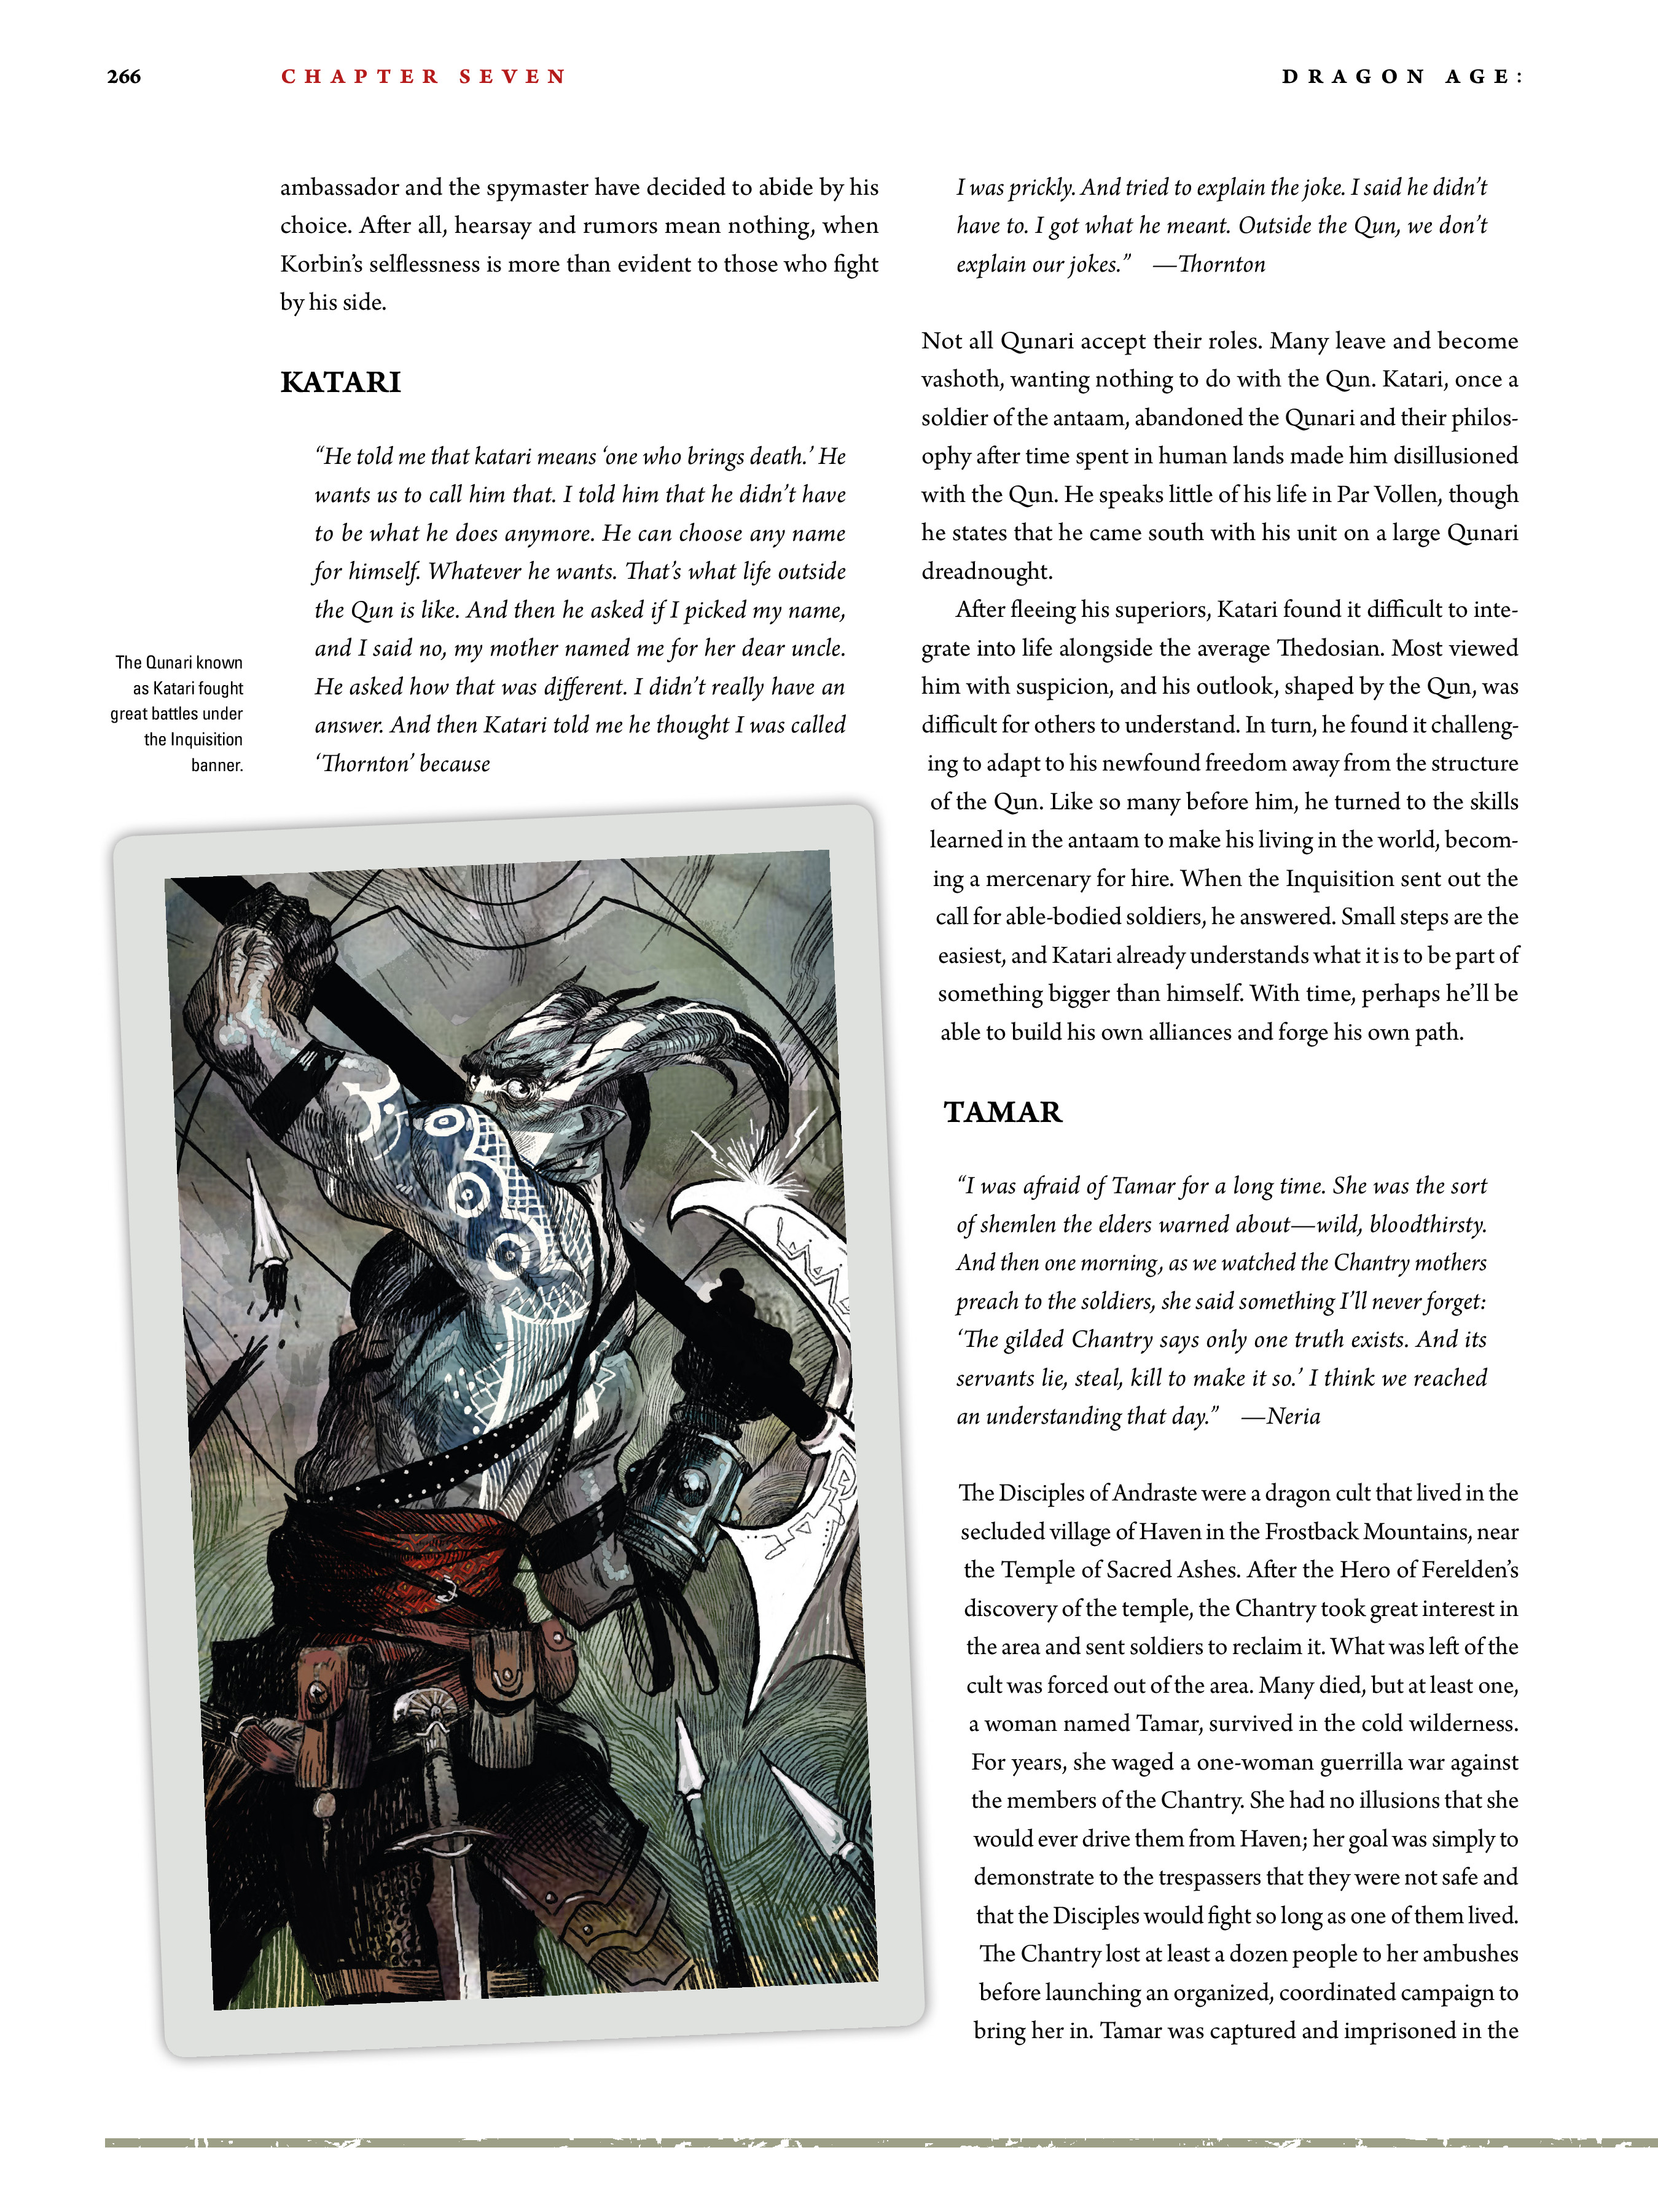 Read online Dragon Age: The World of Thedas comic -  Issue # TPB 2 - 259